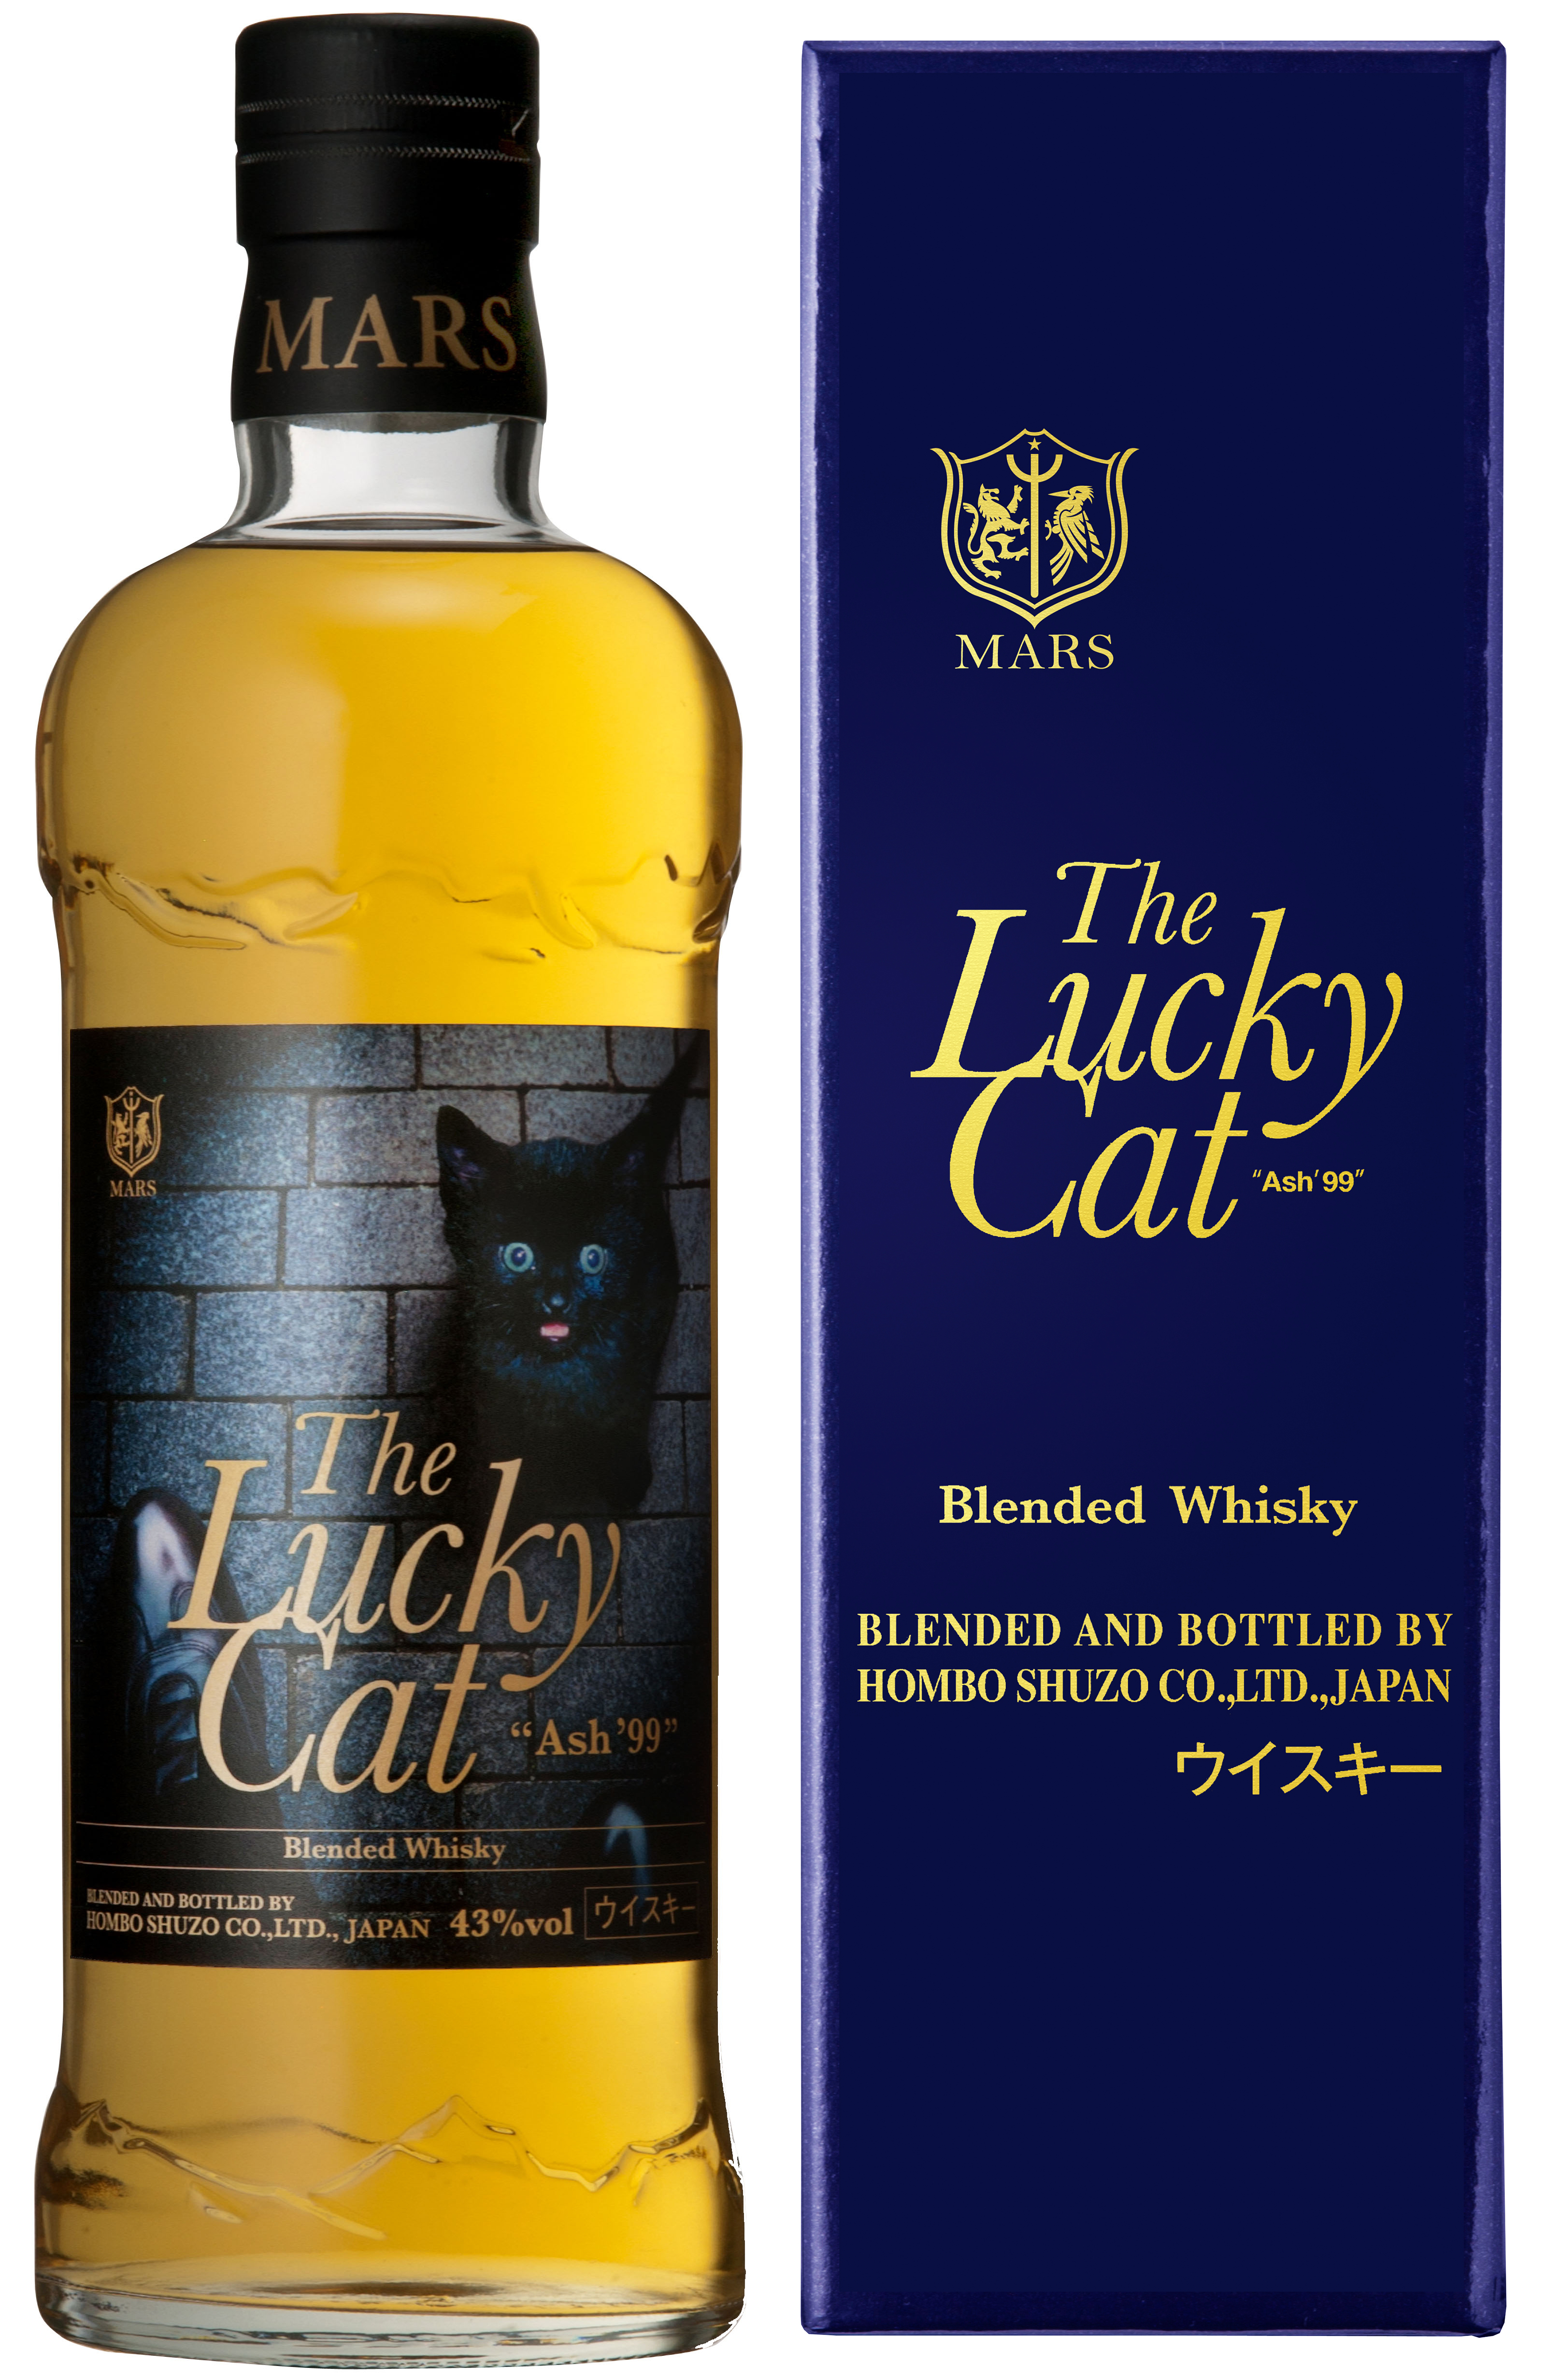 The Lucky Cat 「Ash 99」Blended Whisky